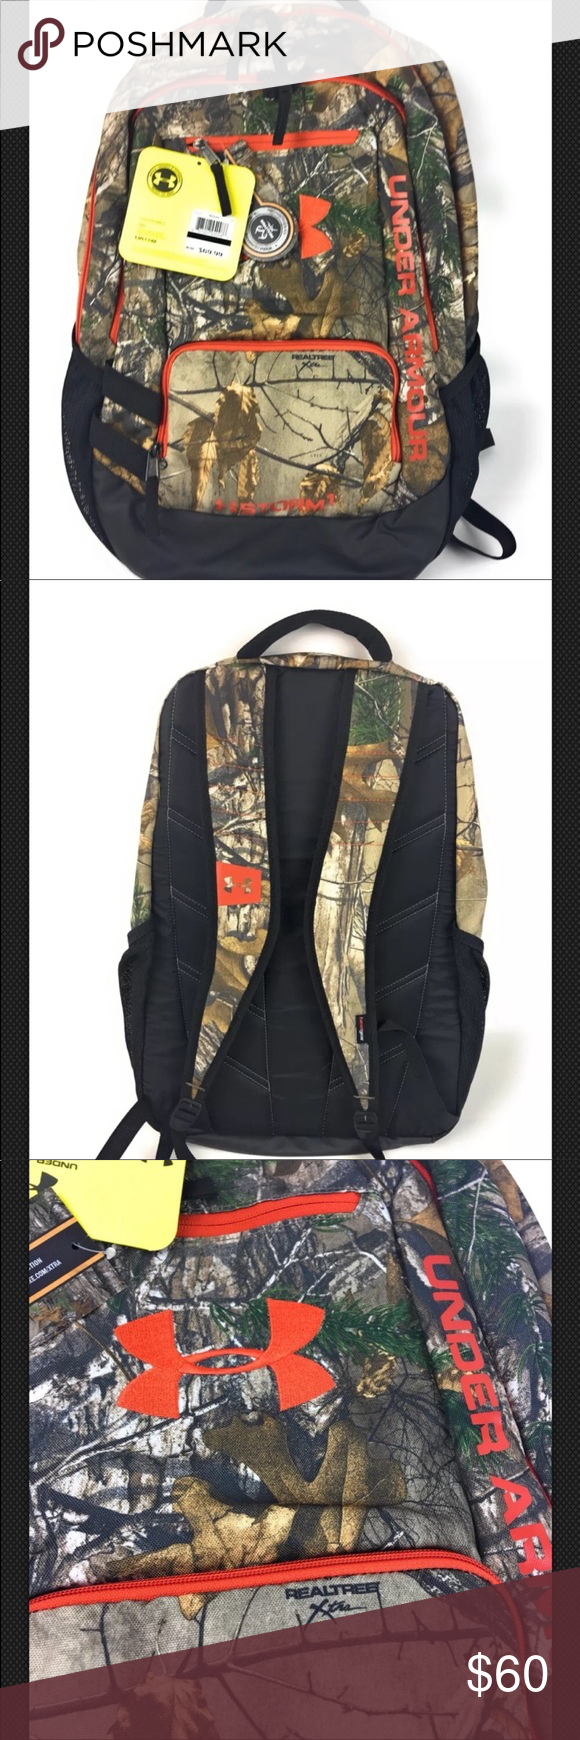 506396ba73 Under Armour UA Camo Hustle Backpack New NWT PRODUCT DNA UA Storm  technology repels water without